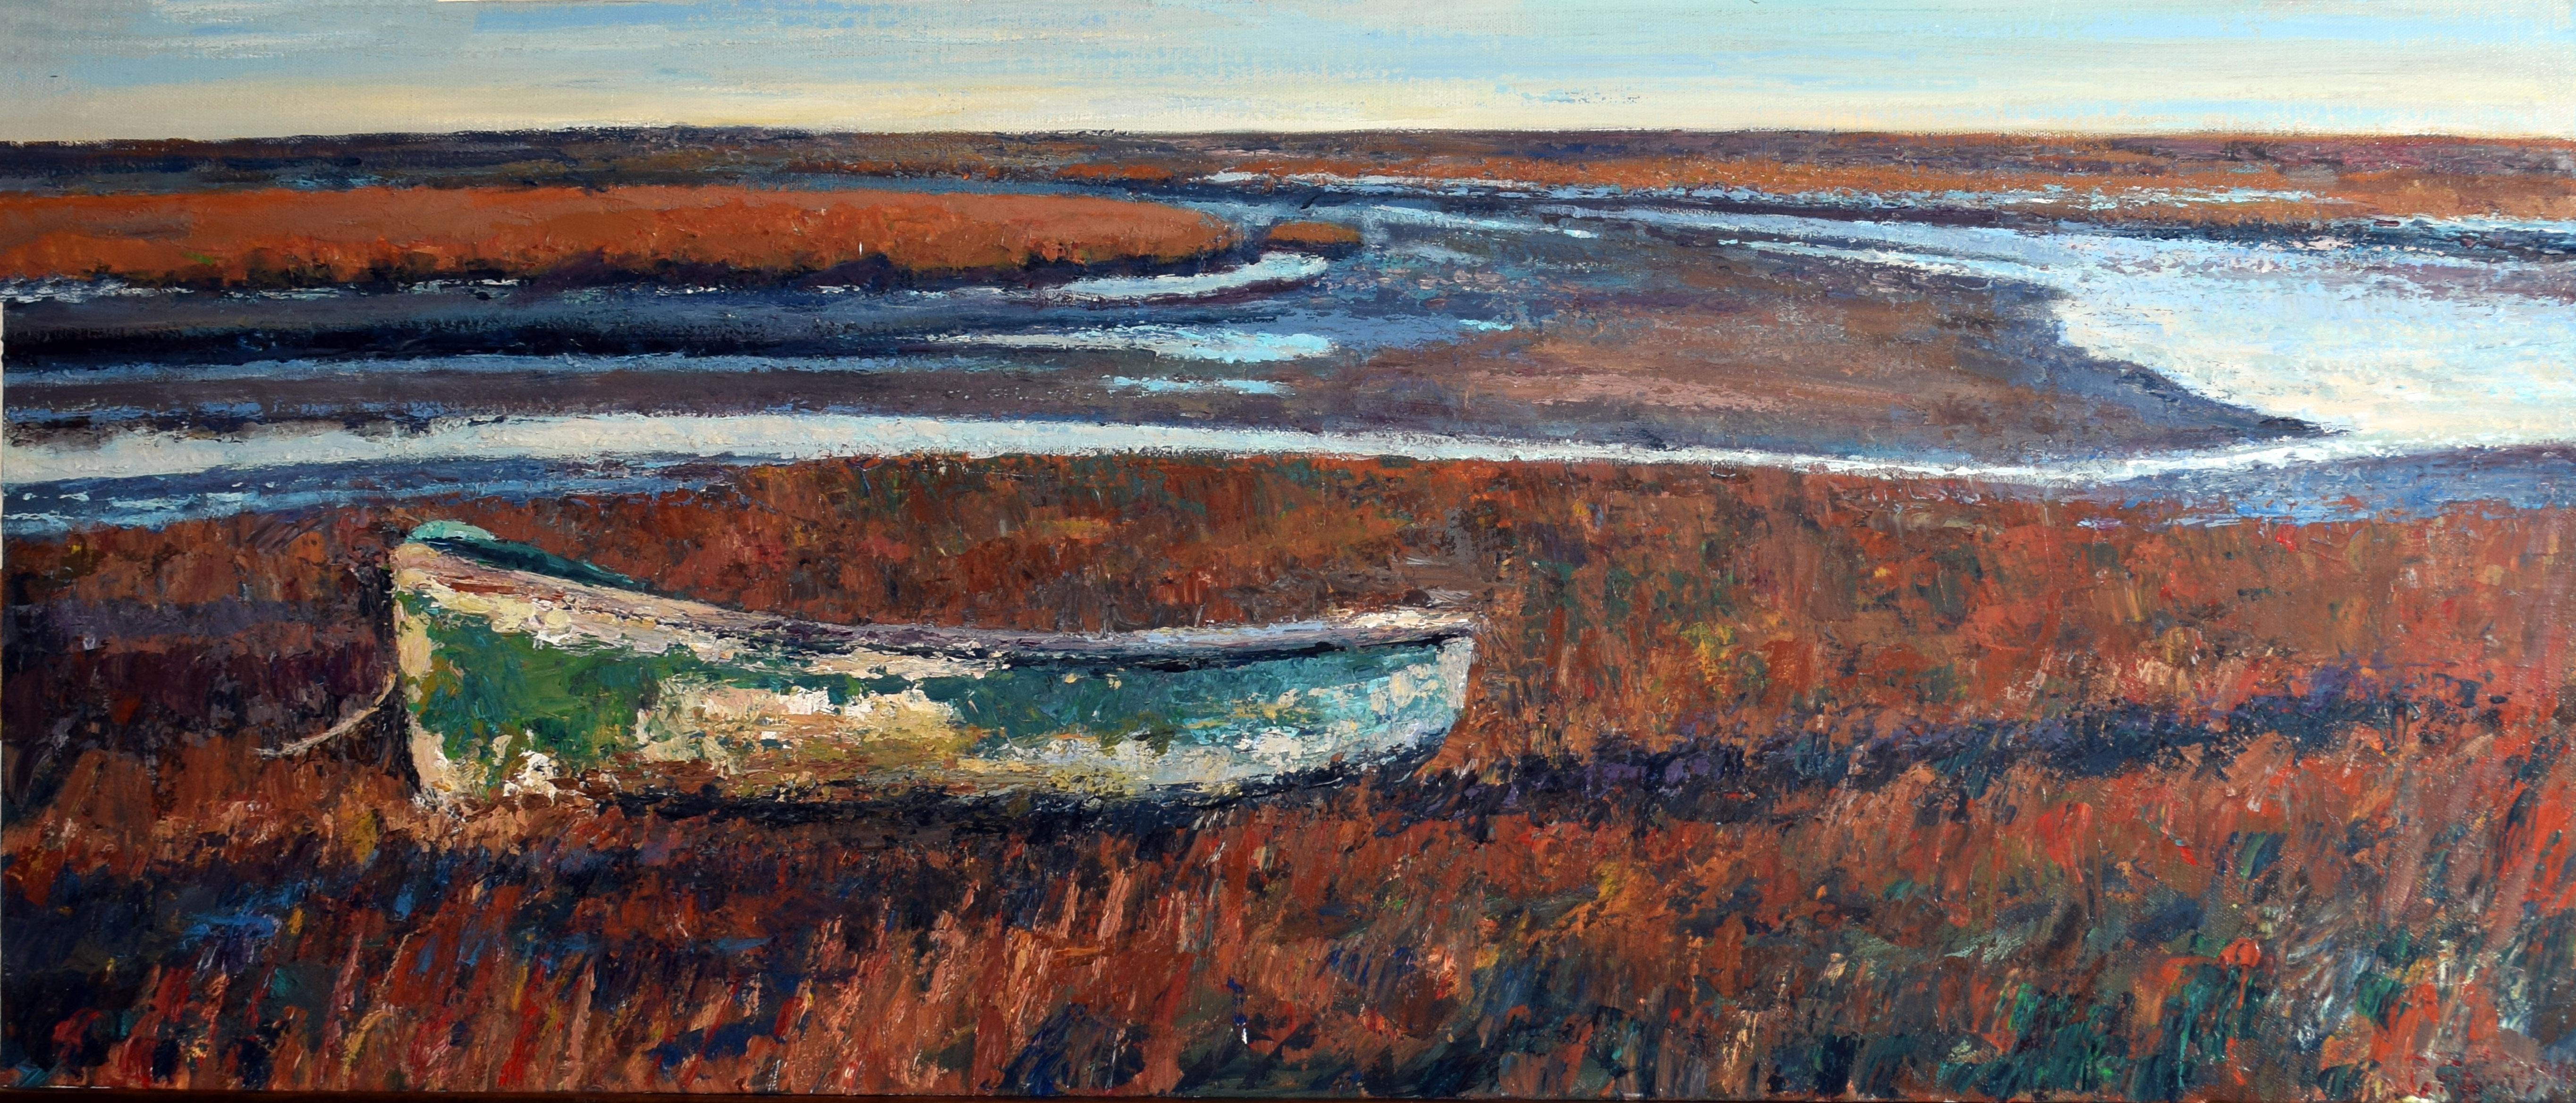 Paul Robinson, Norfolk coastal scene, oil on canvas, signed lower right, 40 x 100cm, unframed